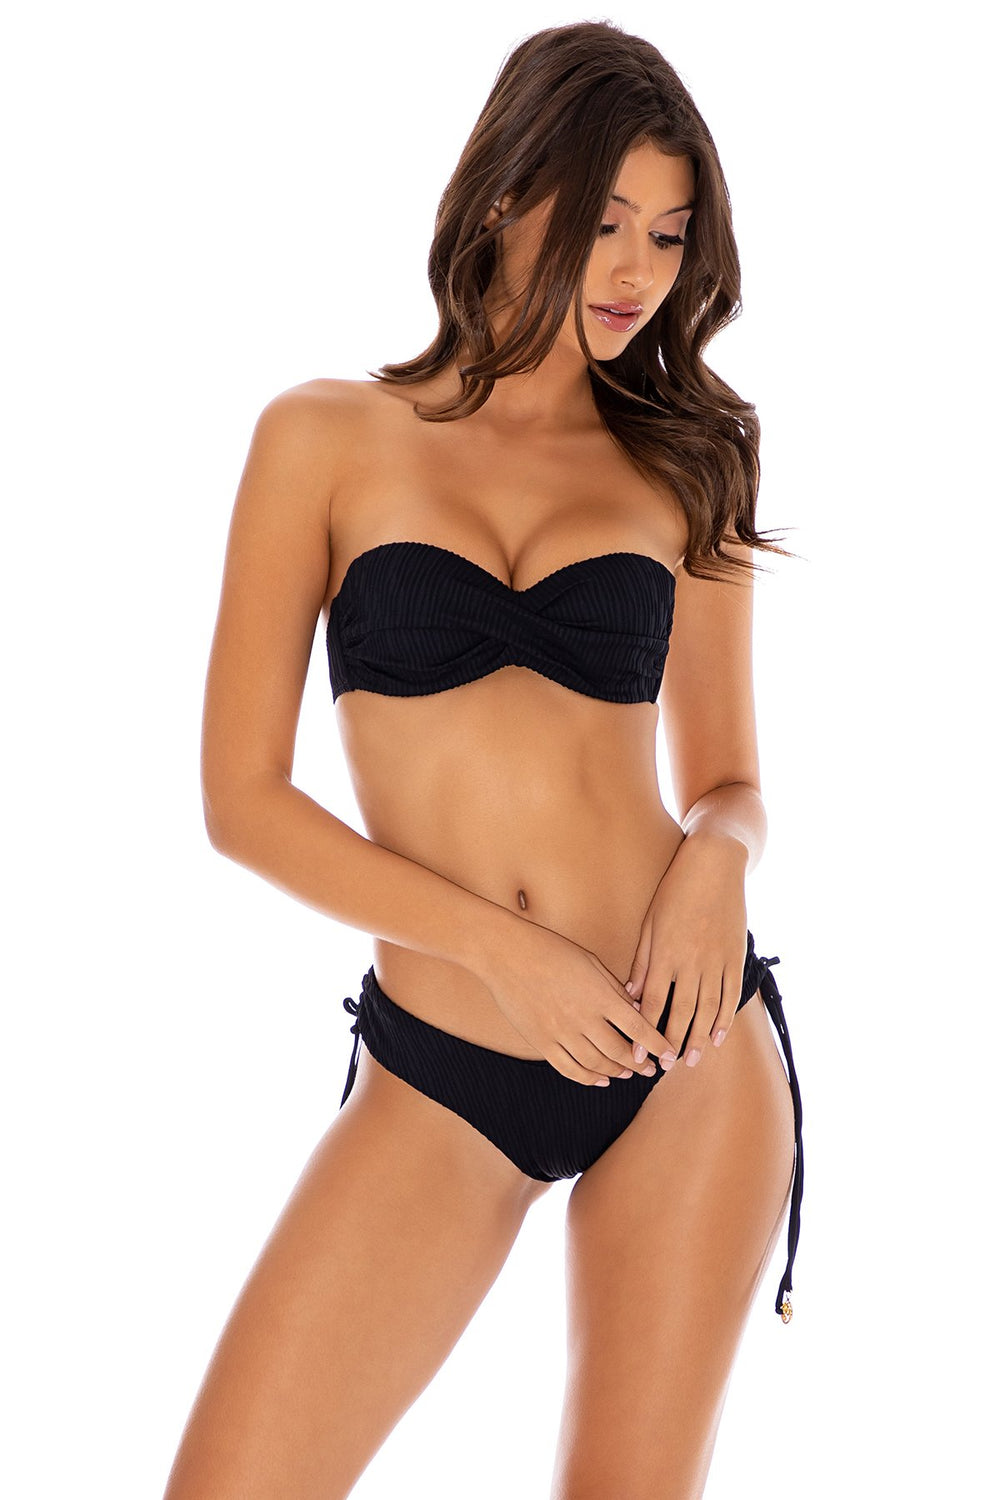 RIVER DANCE - Underwire Push Up Bandeau Top & Drawstring Side  Bottom • Black